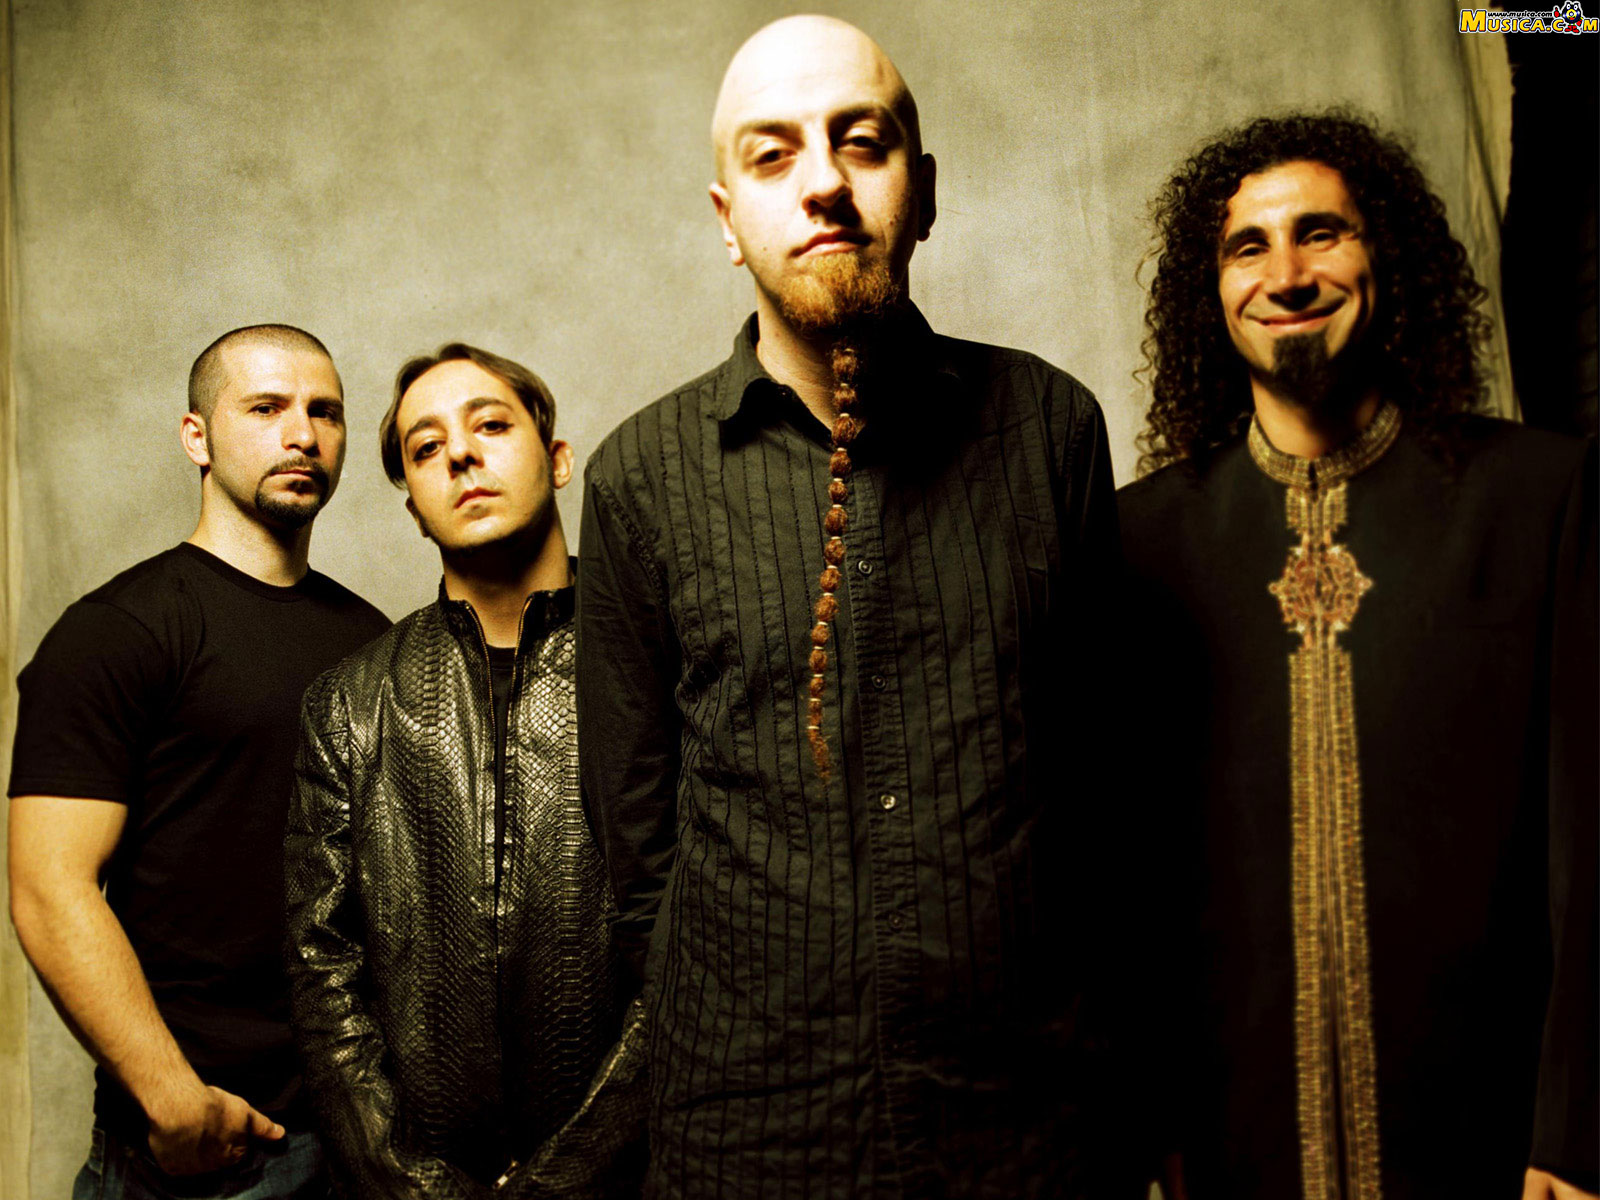 Wallpapers HD System of a Down   SOAD26 Wallpapers 1600x1200